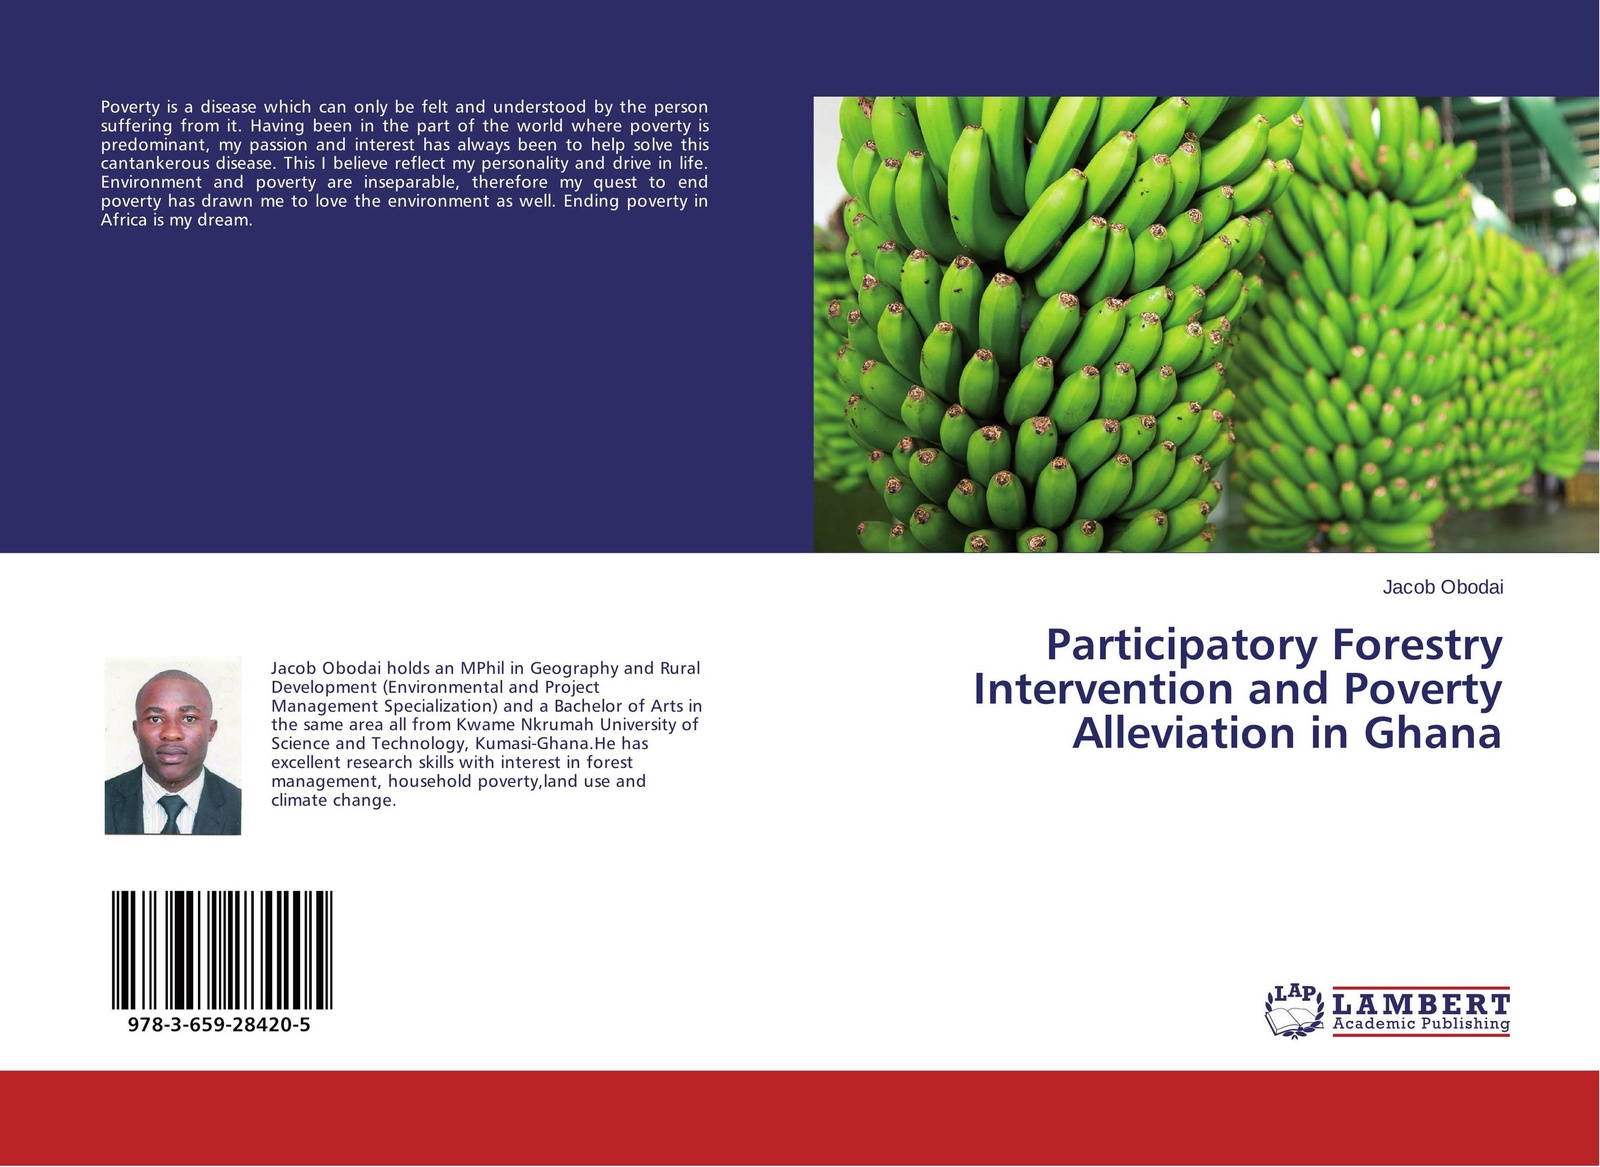 Jacob Obodai Participatory Forestry Intervention and Poverty Alleviation in Ghana persistence of poverty in rural ghana